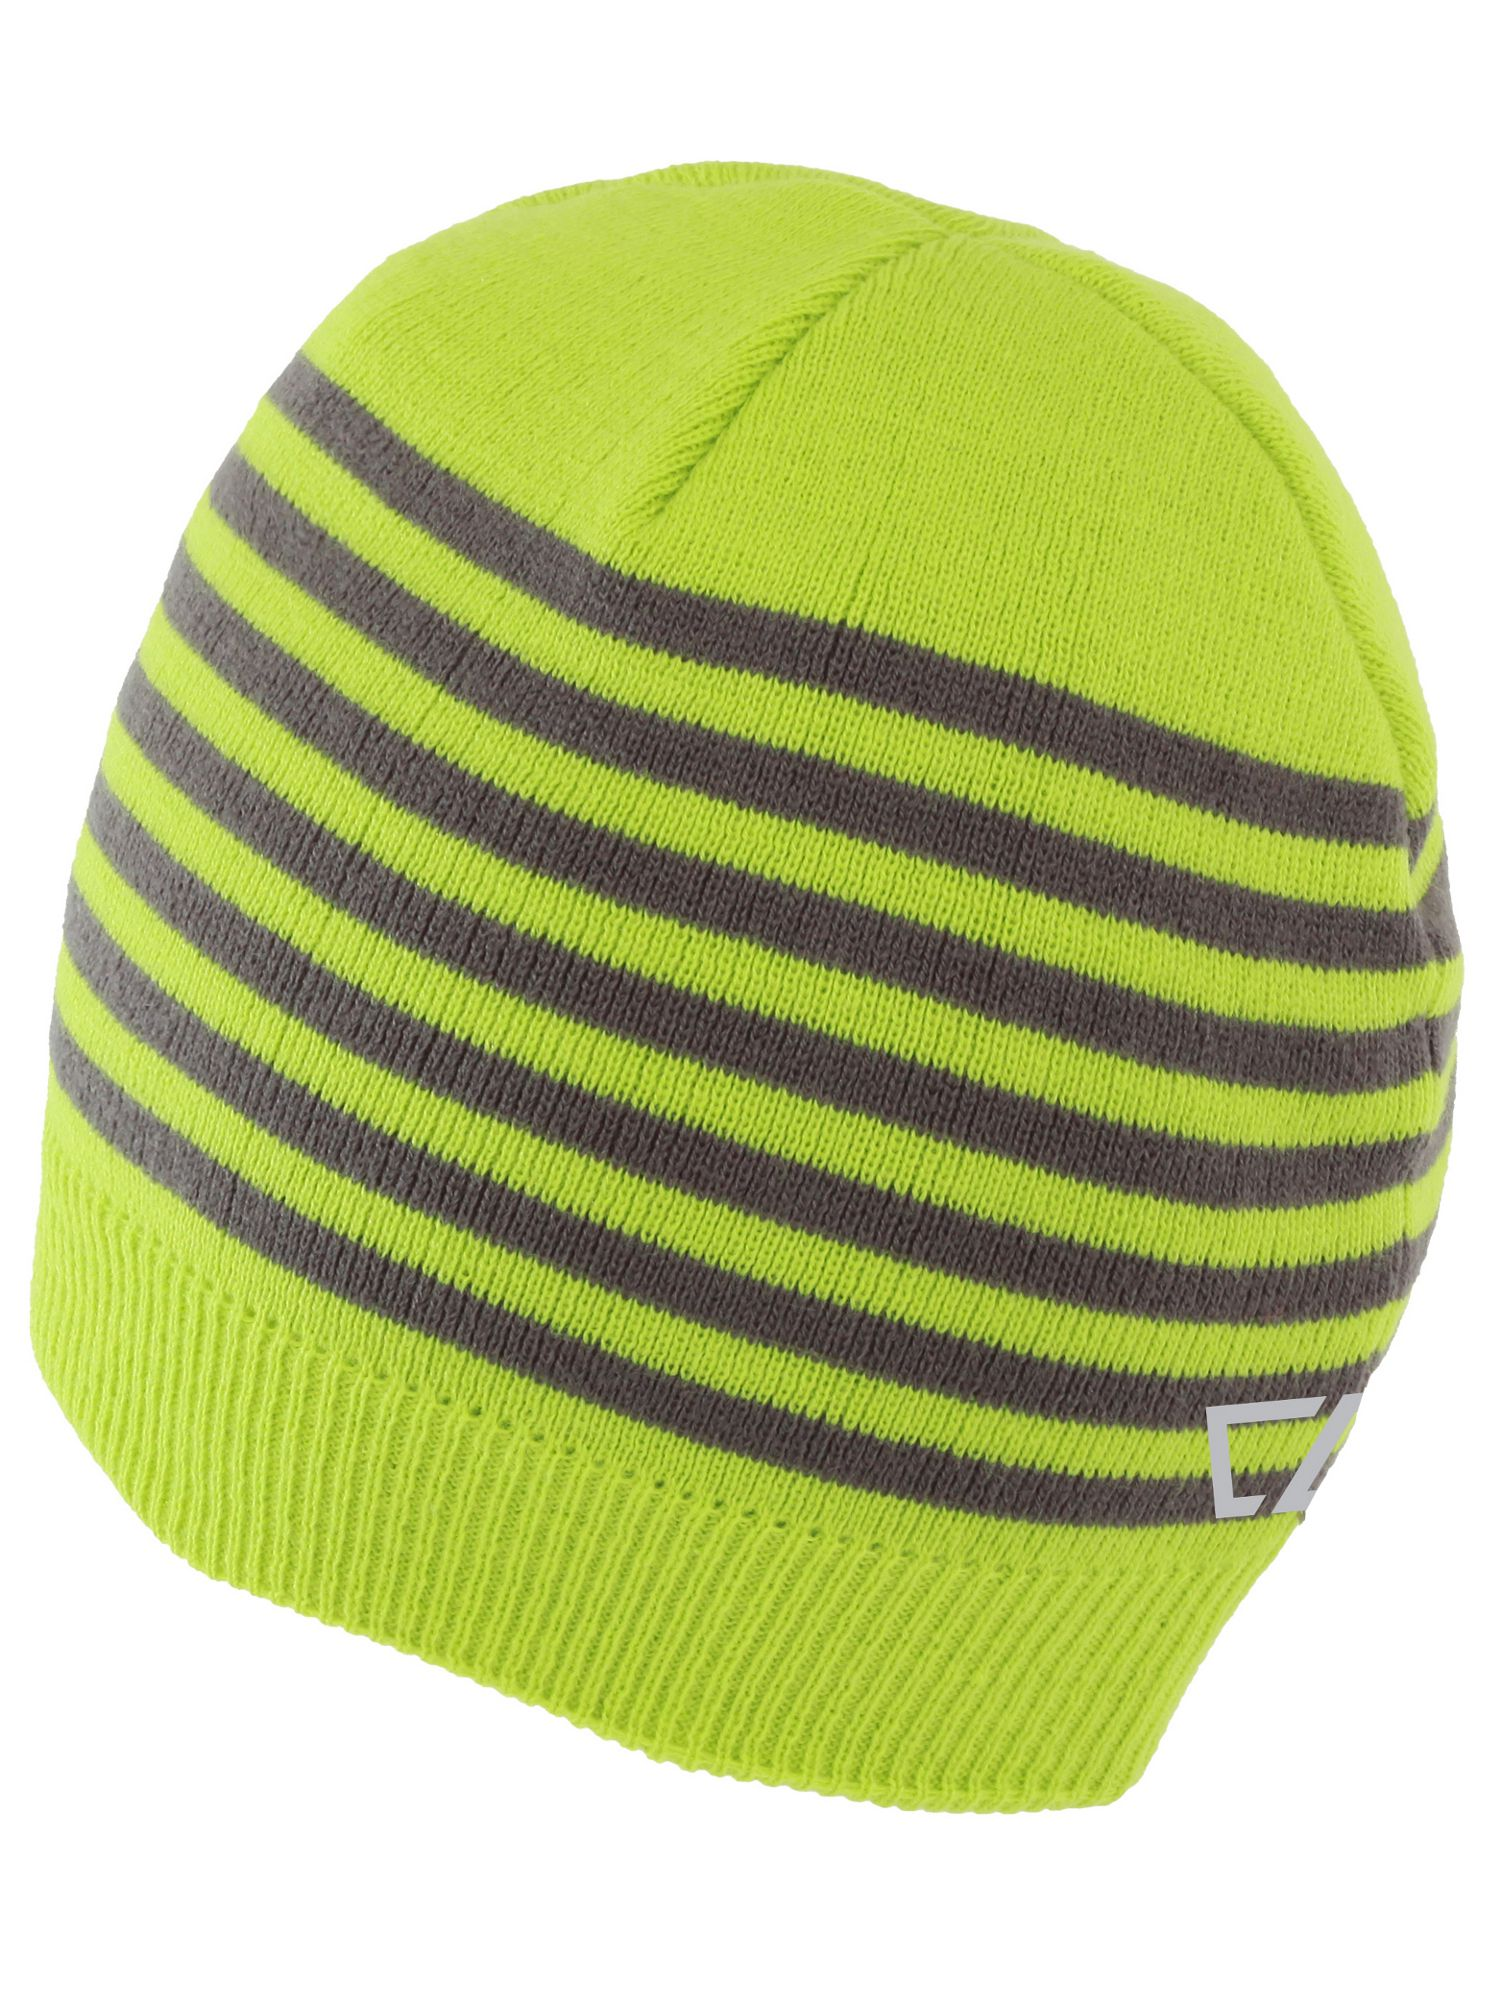 Cutter and Buck Cutter and Buck Striped knitted beanie, Green